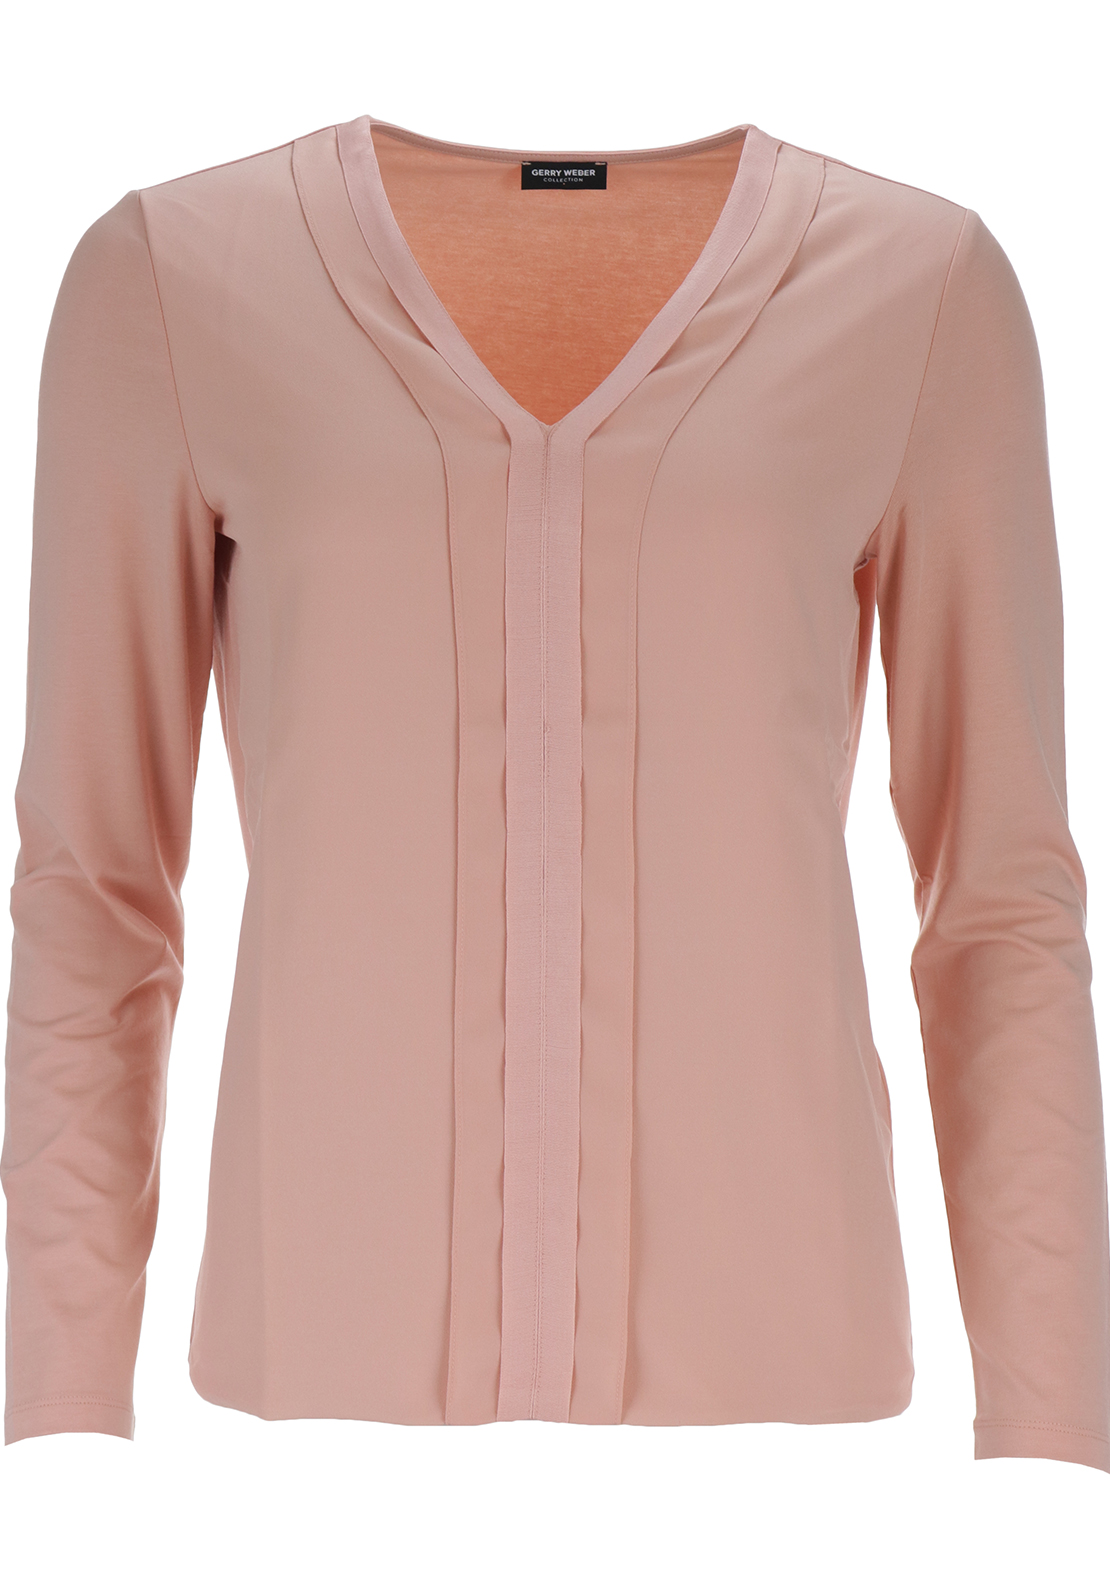 Gerry Weber Ribbon Trim Long Sleeve Top, Peach